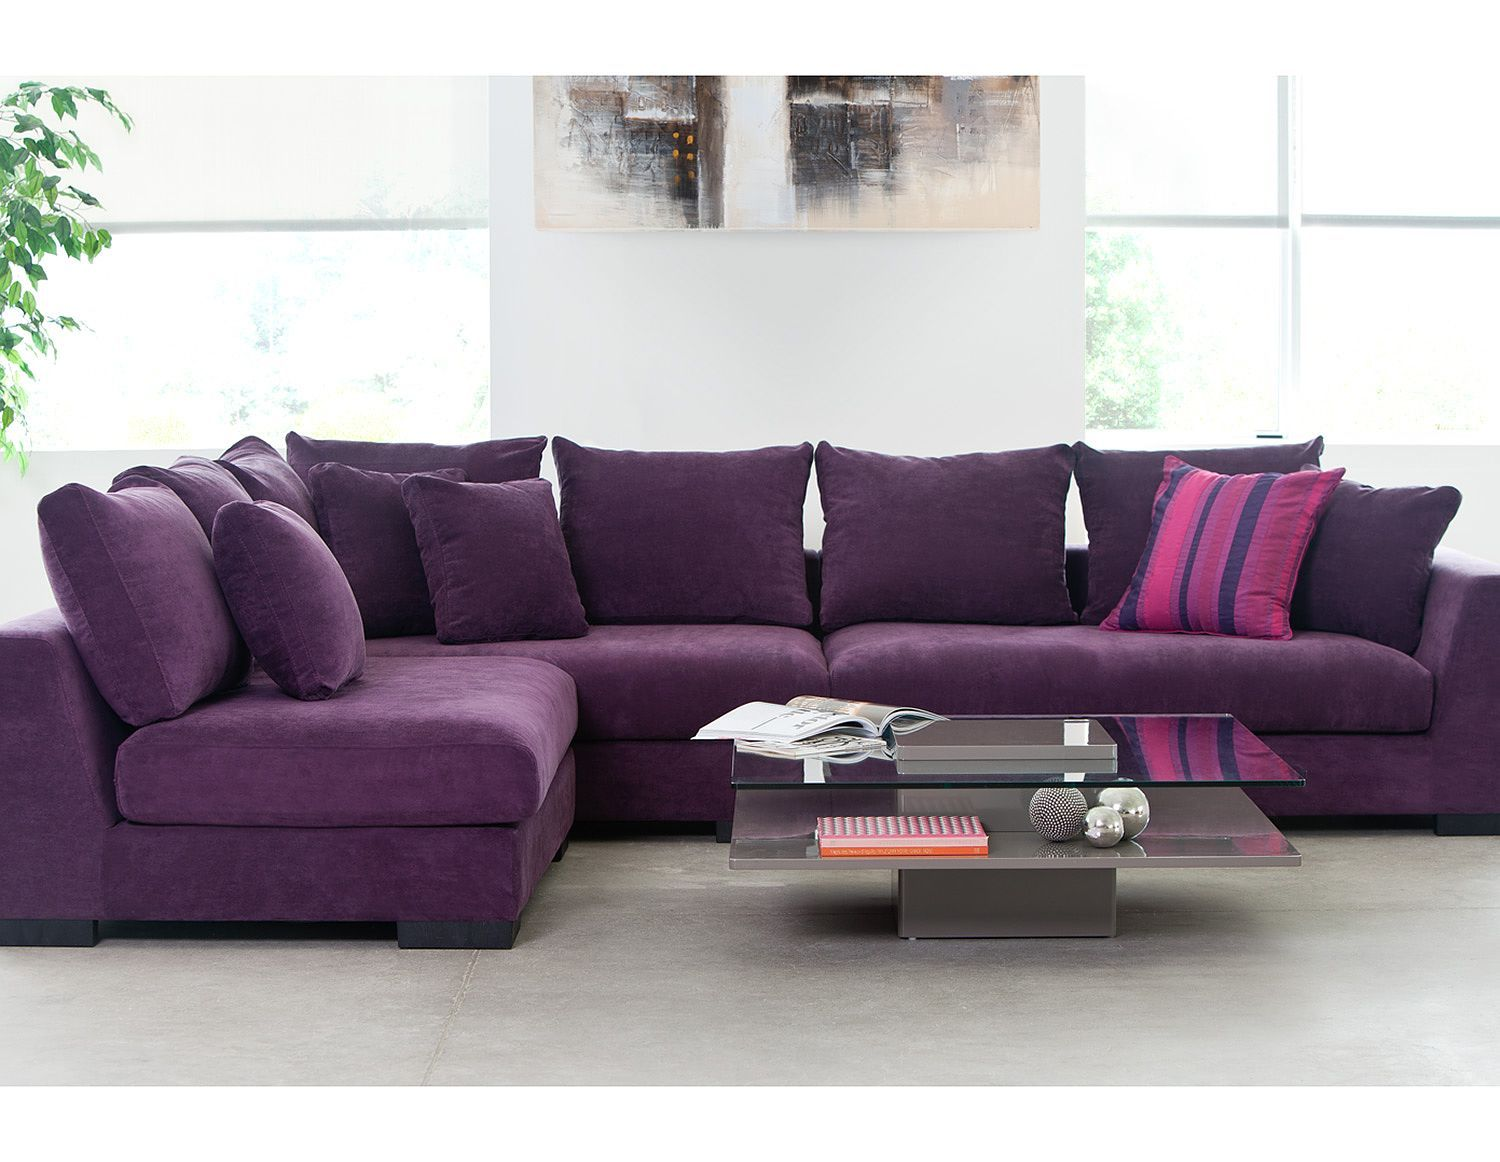 Purple Living Room Furniture Sofas Wall Colors For Images Pin By Selbicconsult On Sofa Set Pinterest Cool Couch Unique 26 Office Ideas With